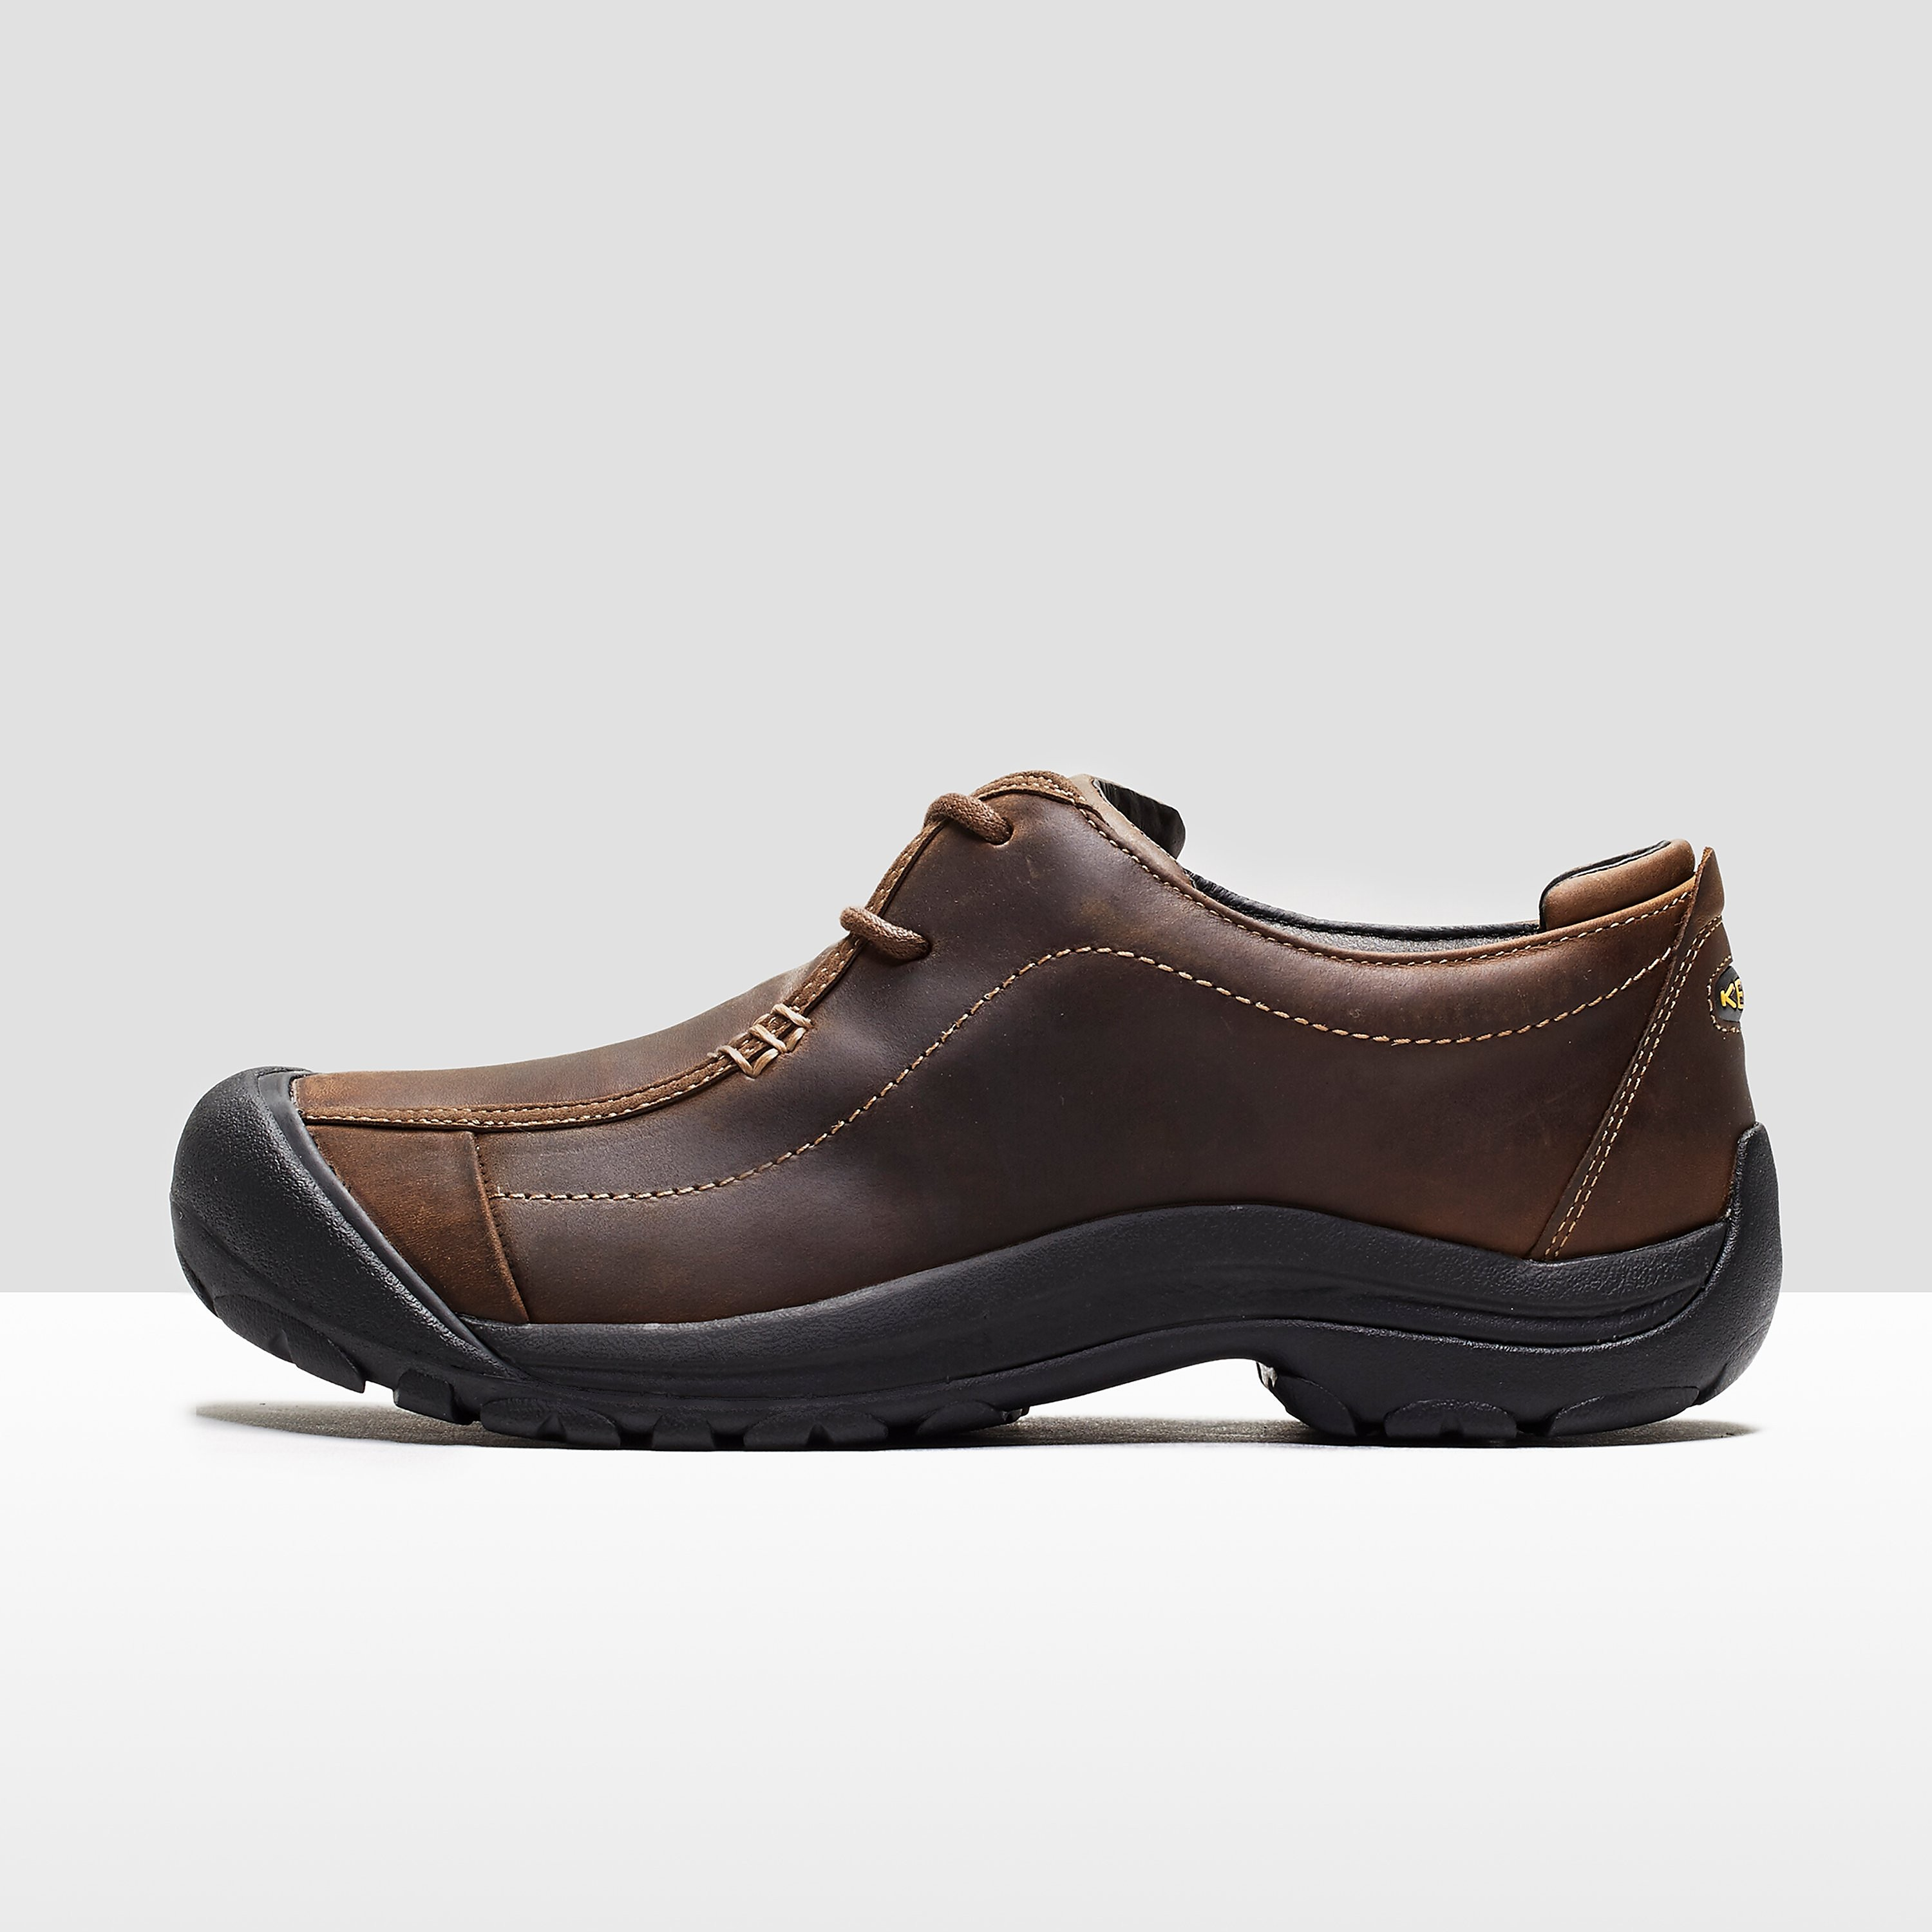 Keen Portsmouth Casual Men's Shoes